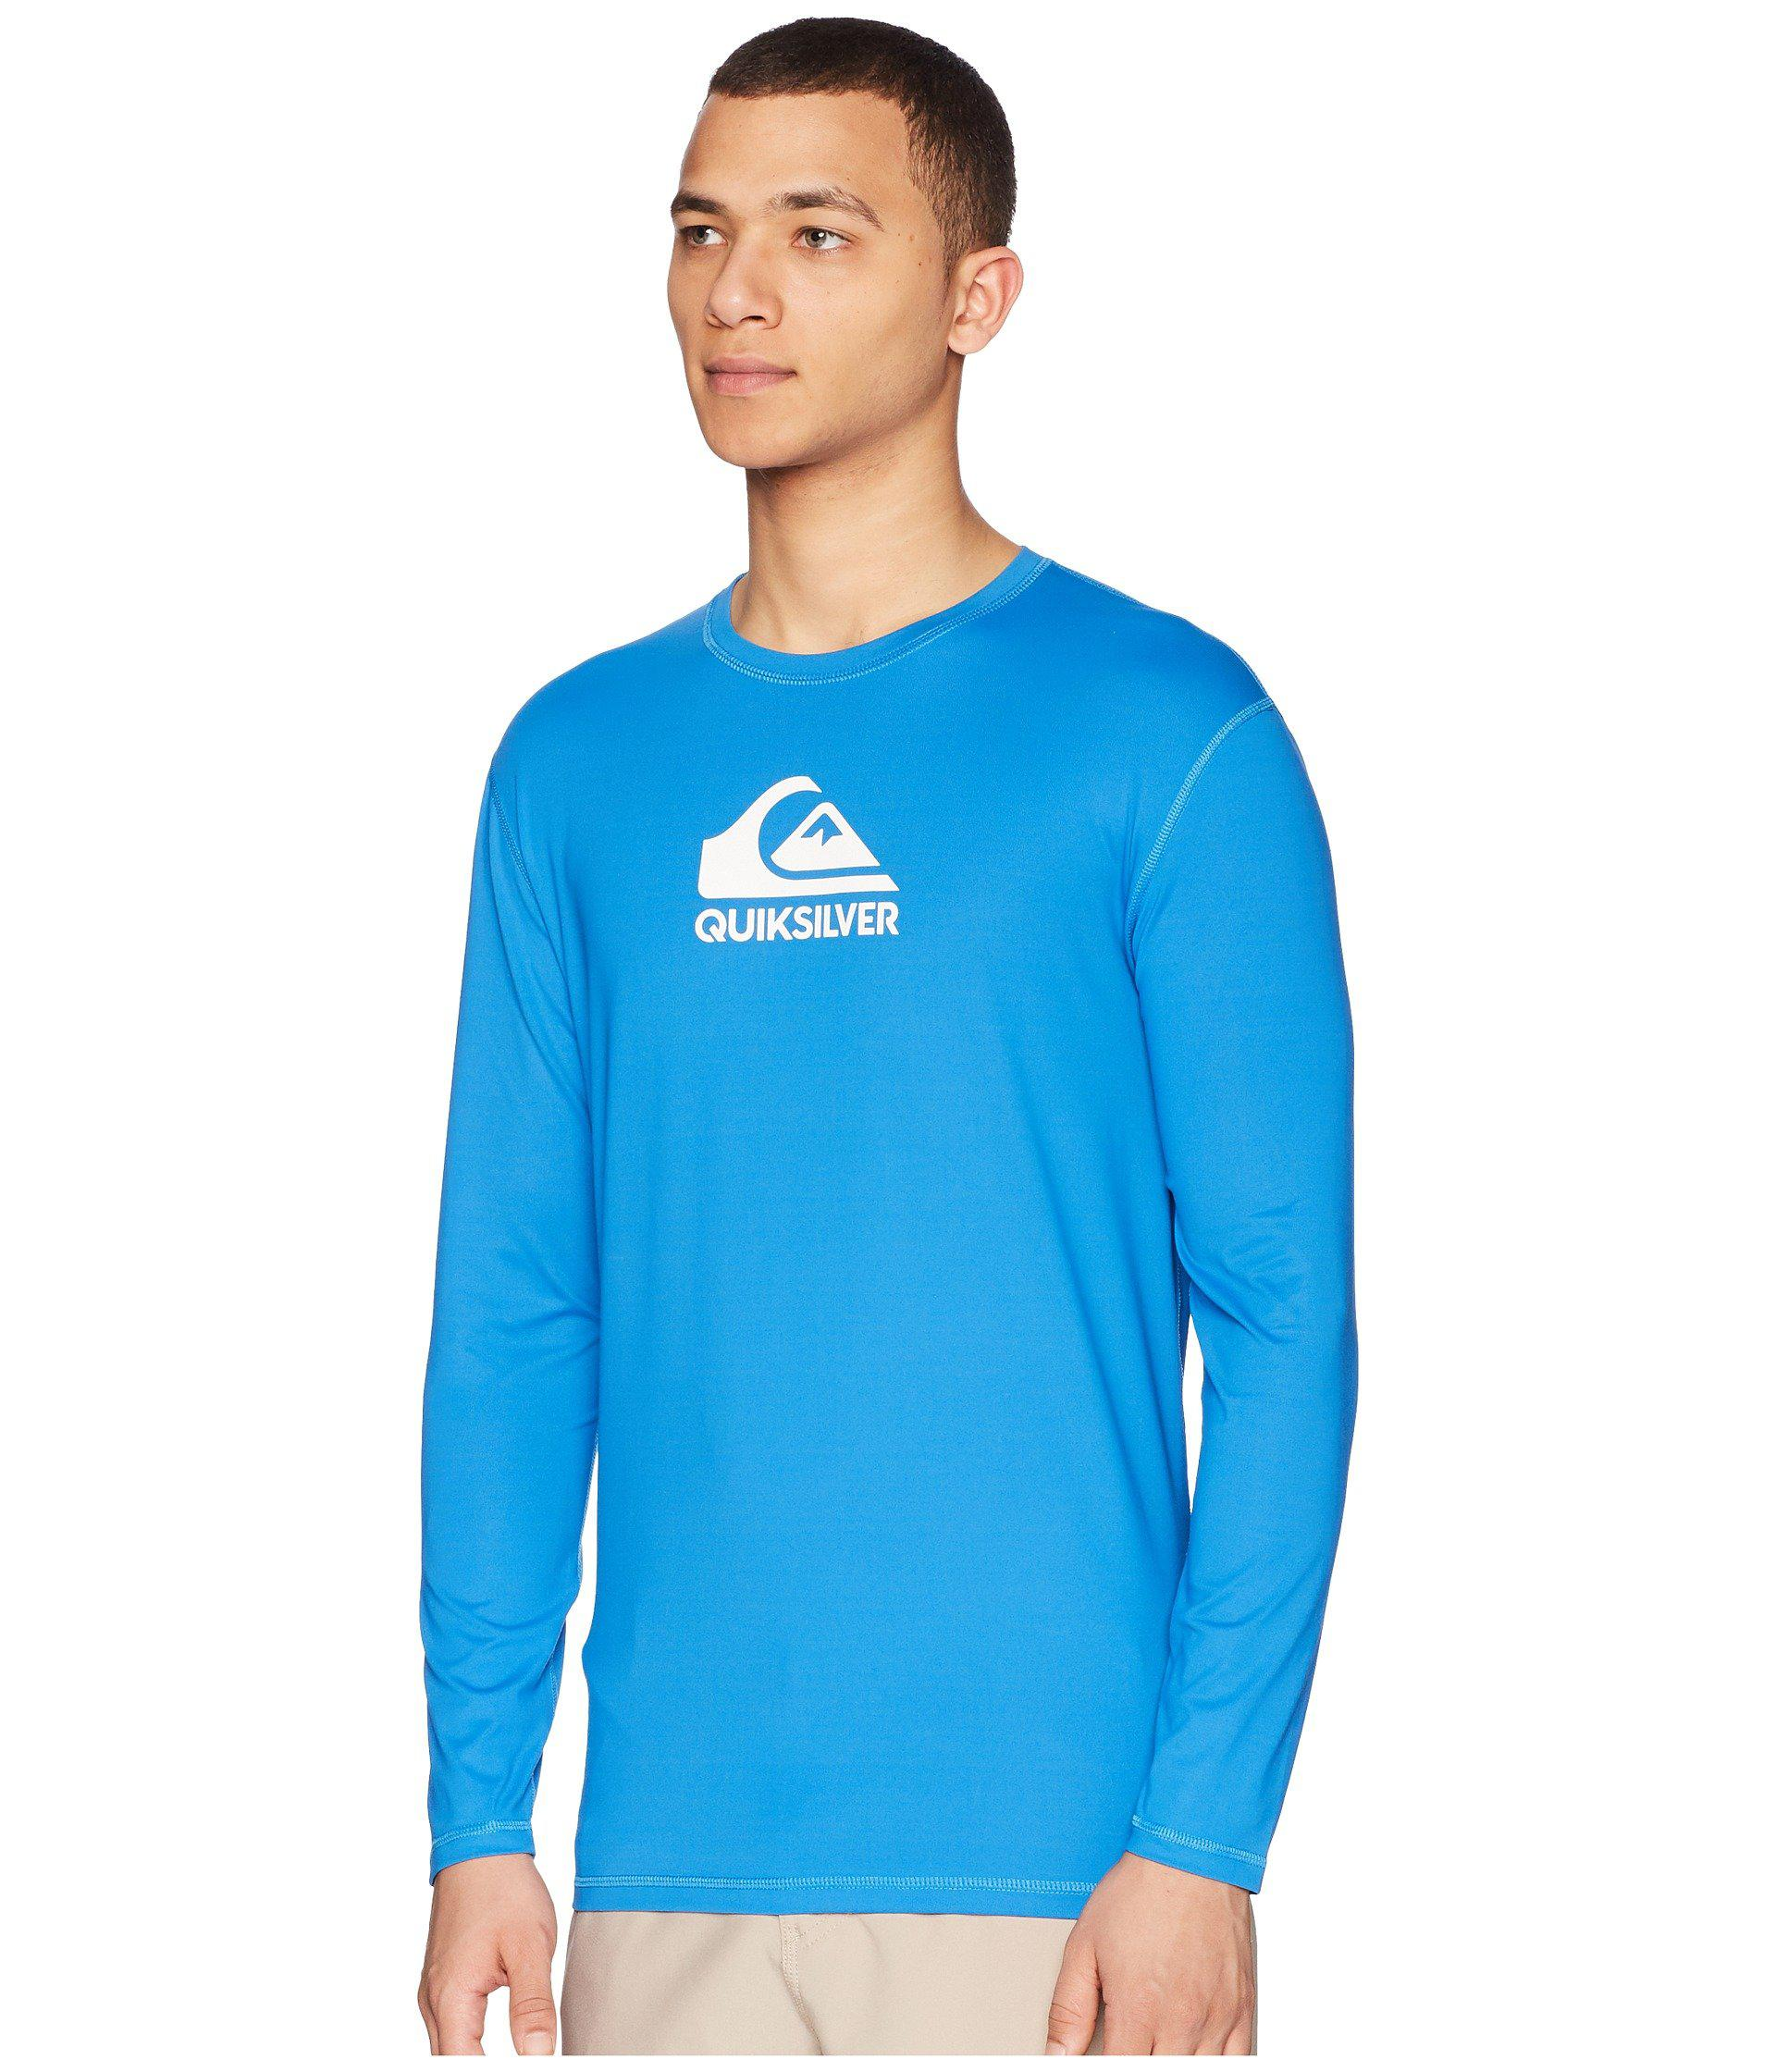 Men's Clothing Ocean Blue Quiksilver Mens Solid Streak Long Sleeve Rashguard Clothing, Shoes, Accessories